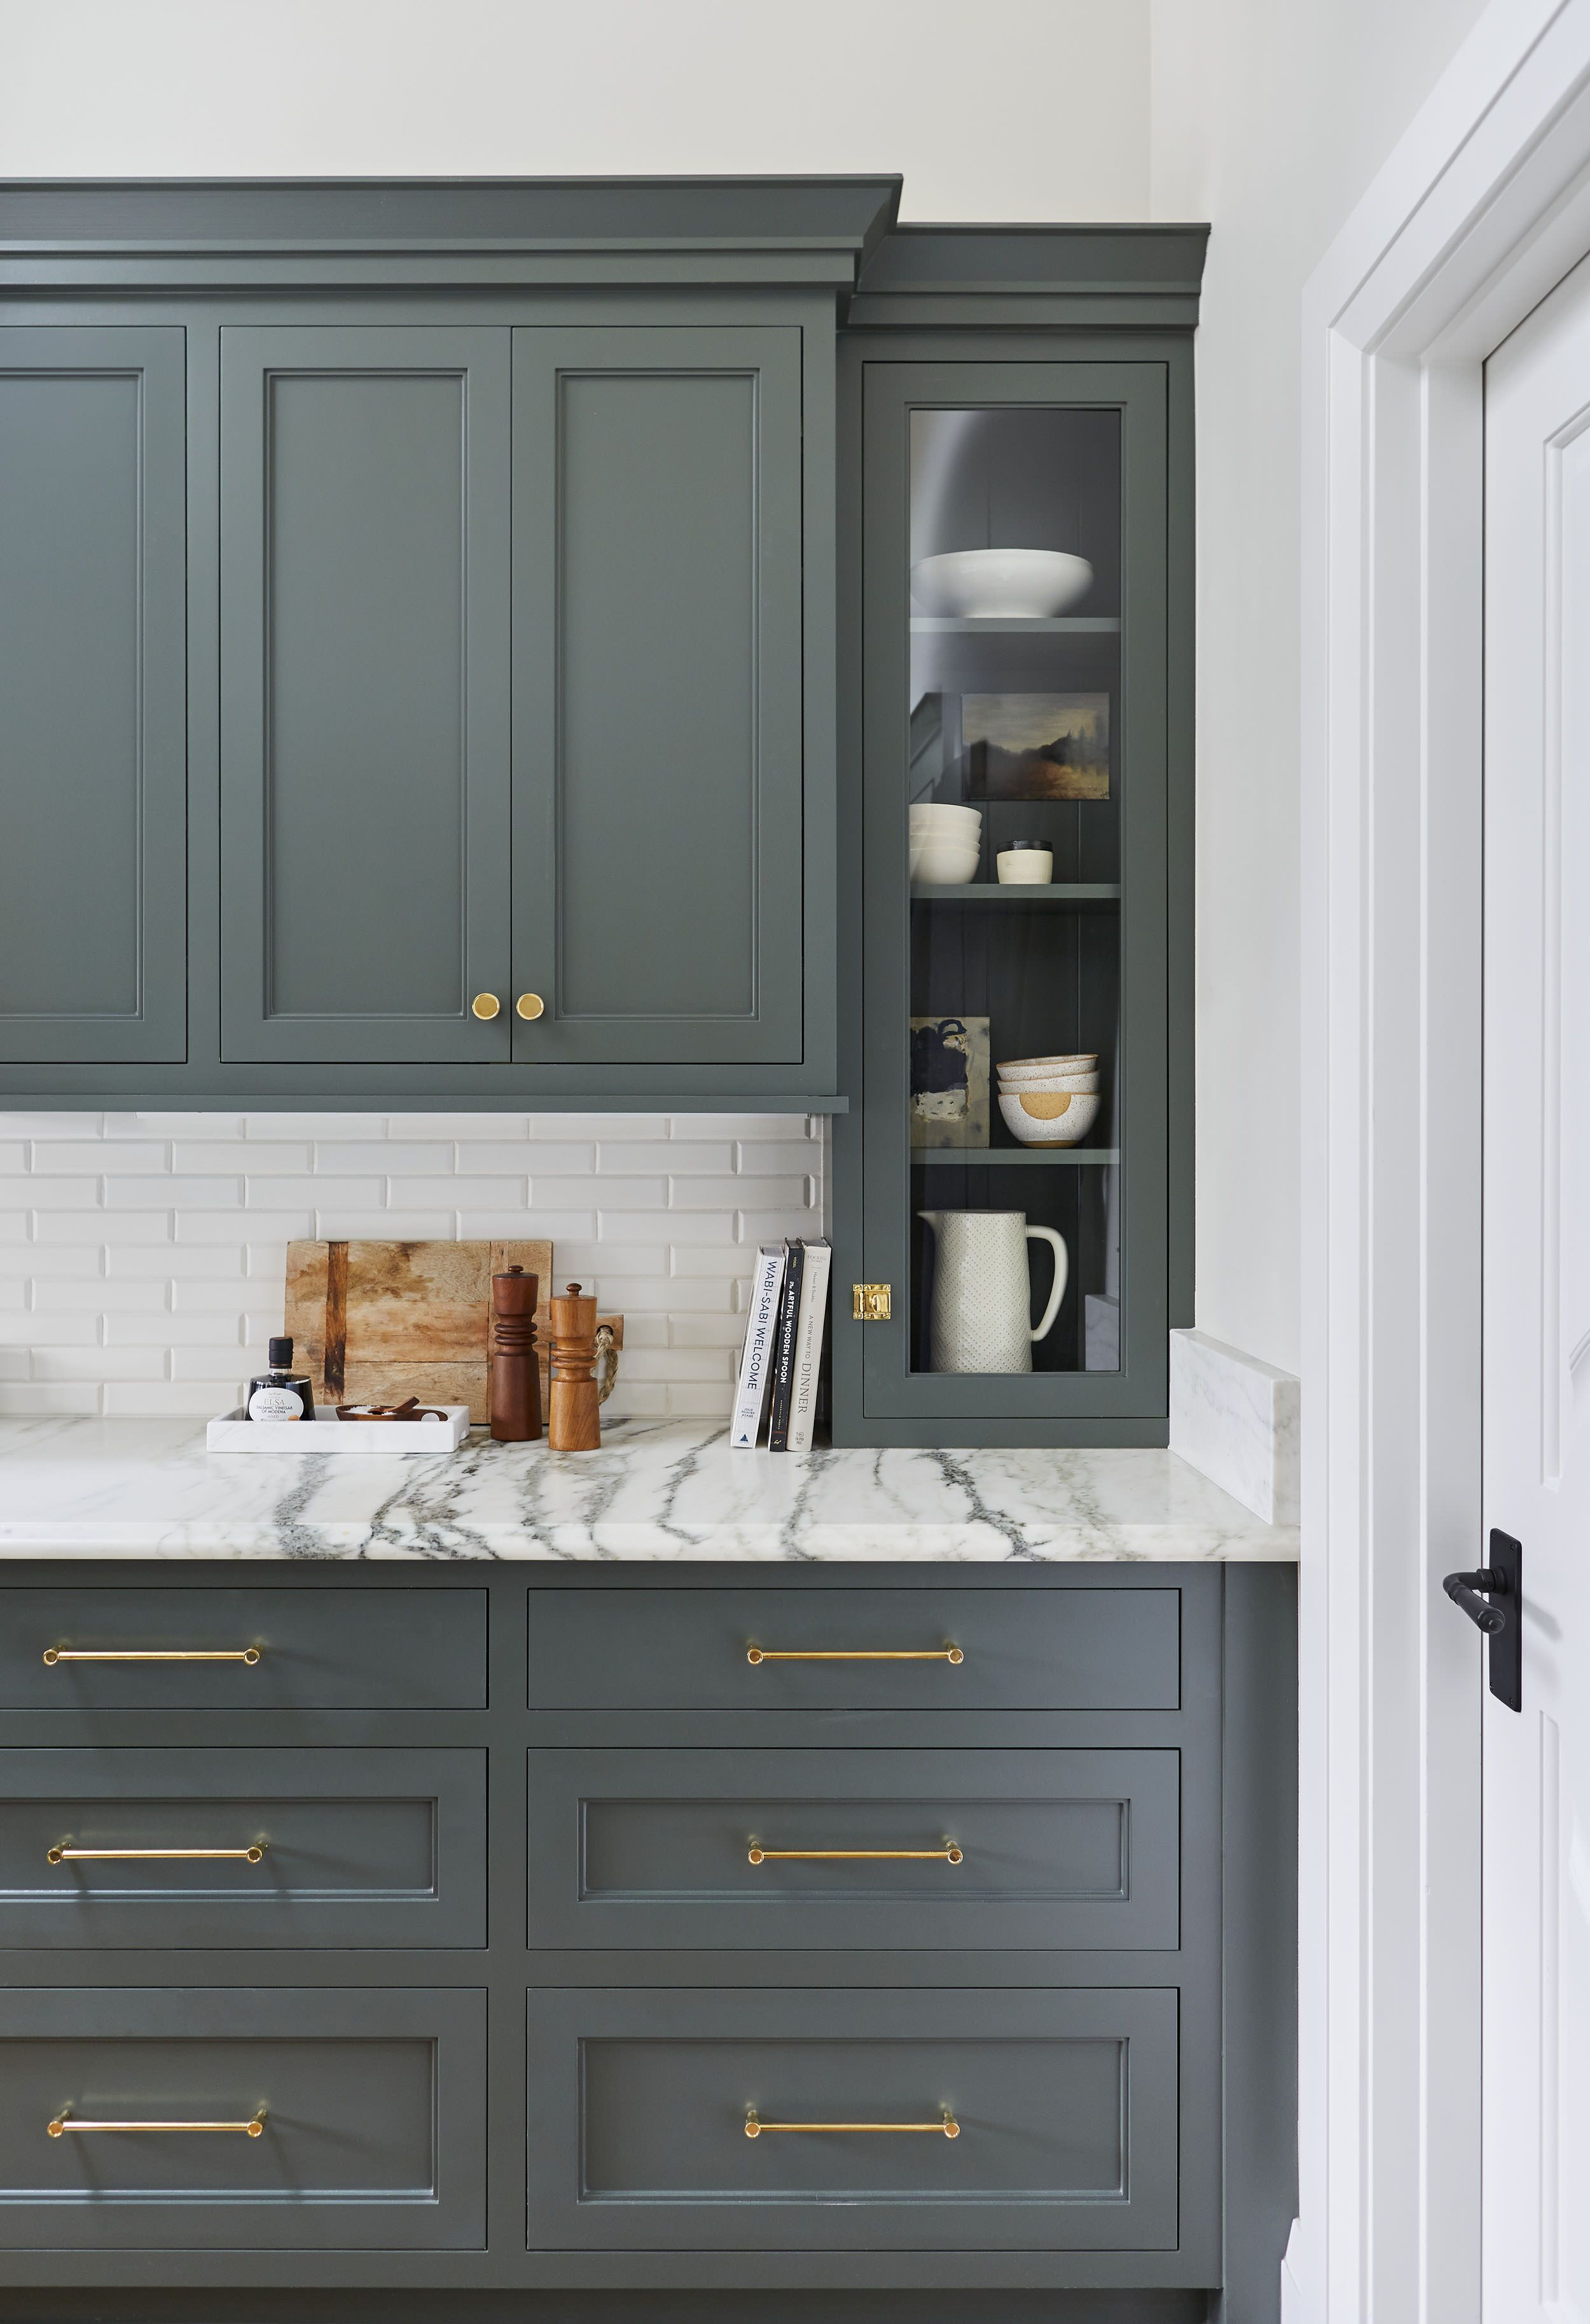 All the Whats Whys  How Muchs of the Portland Kitchen  Big Reveal  HCo Home  Kitchens